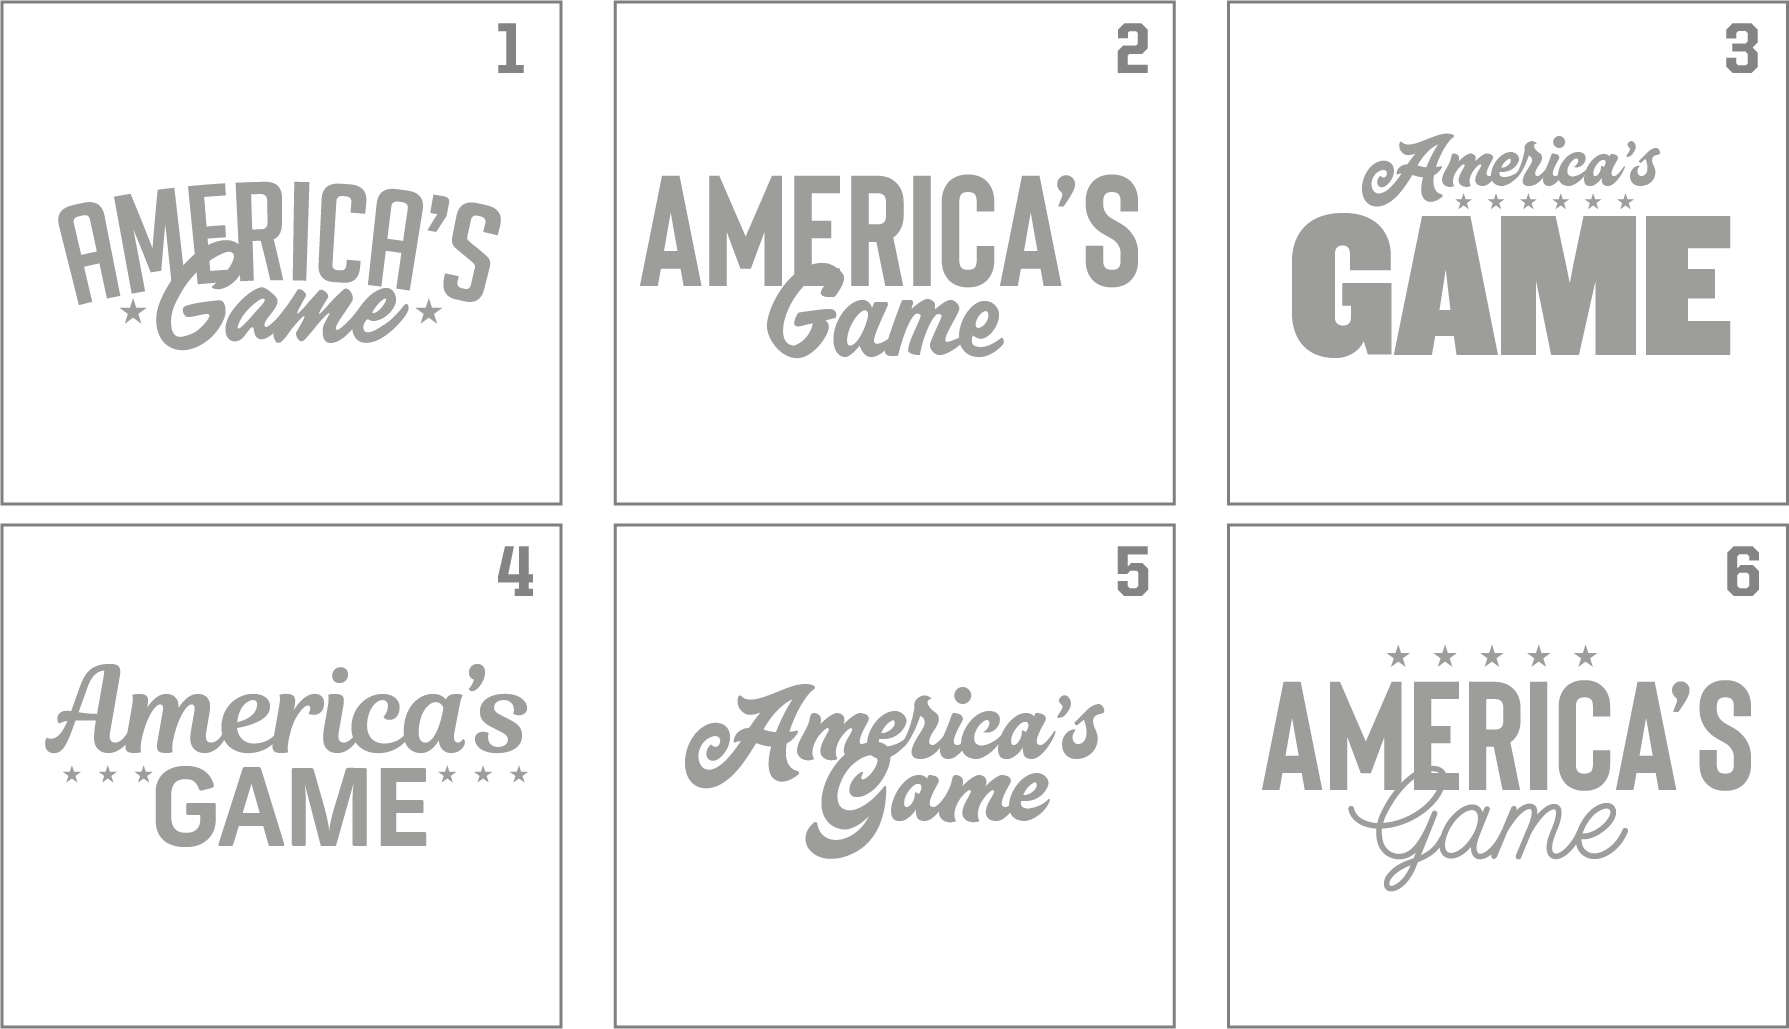 America's Game Font Options-01-01.png